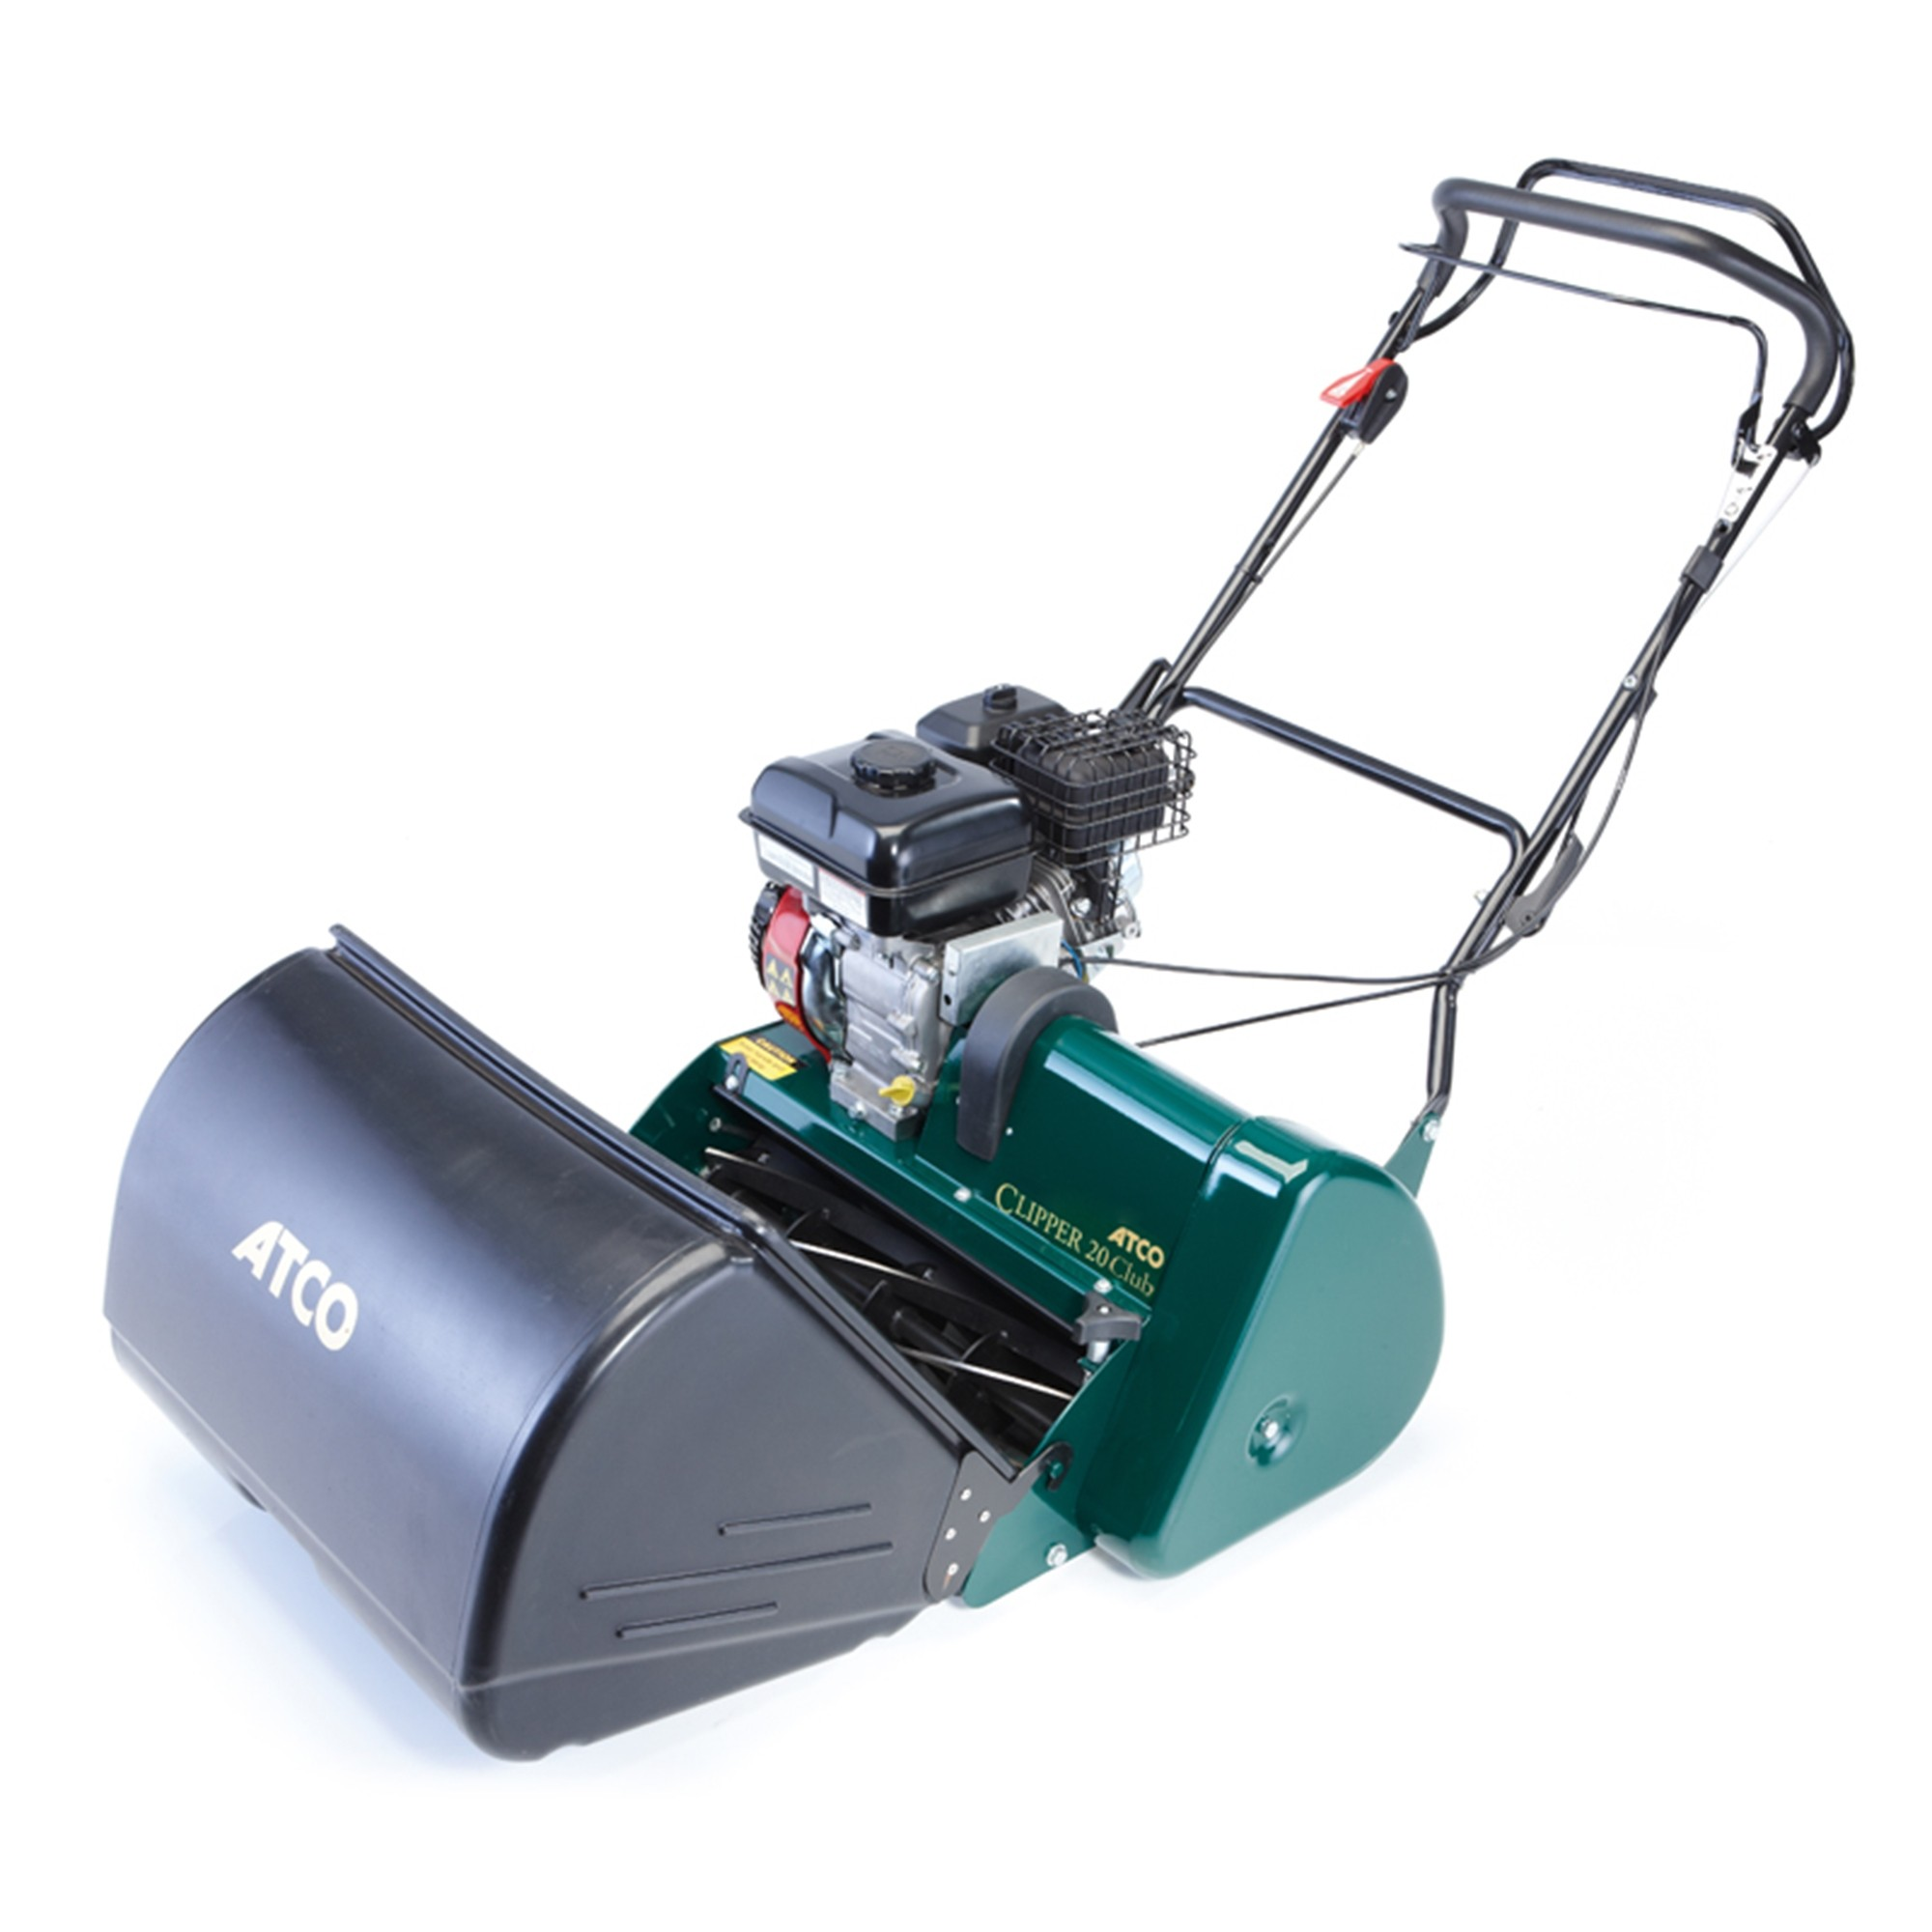 Atco Clipper 20 Club Cylinder Mower